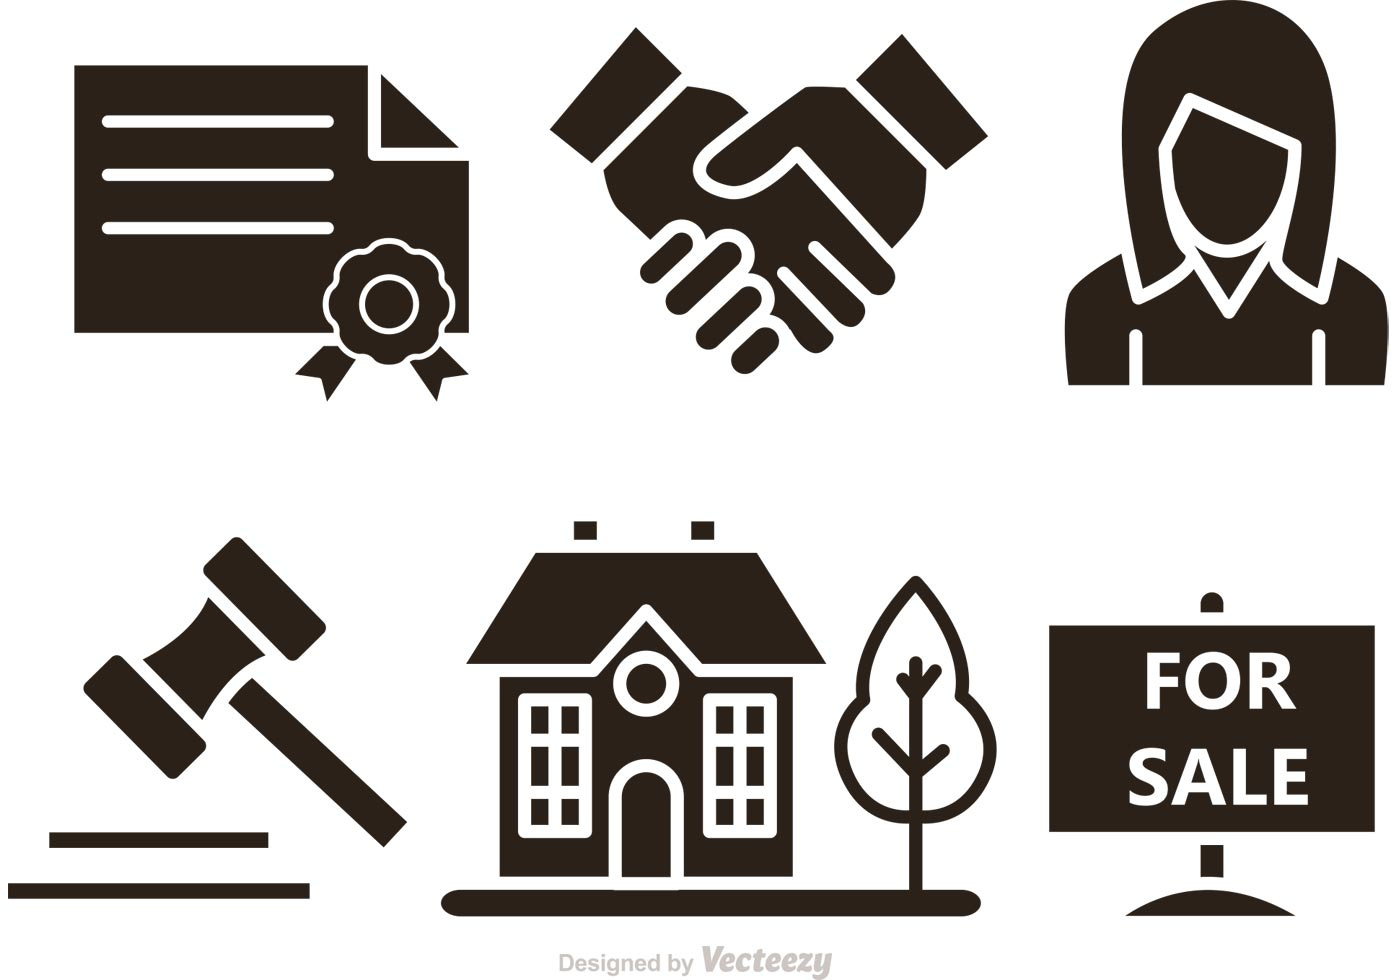 Real Estate Icon : Real estate vector icons download free art stock